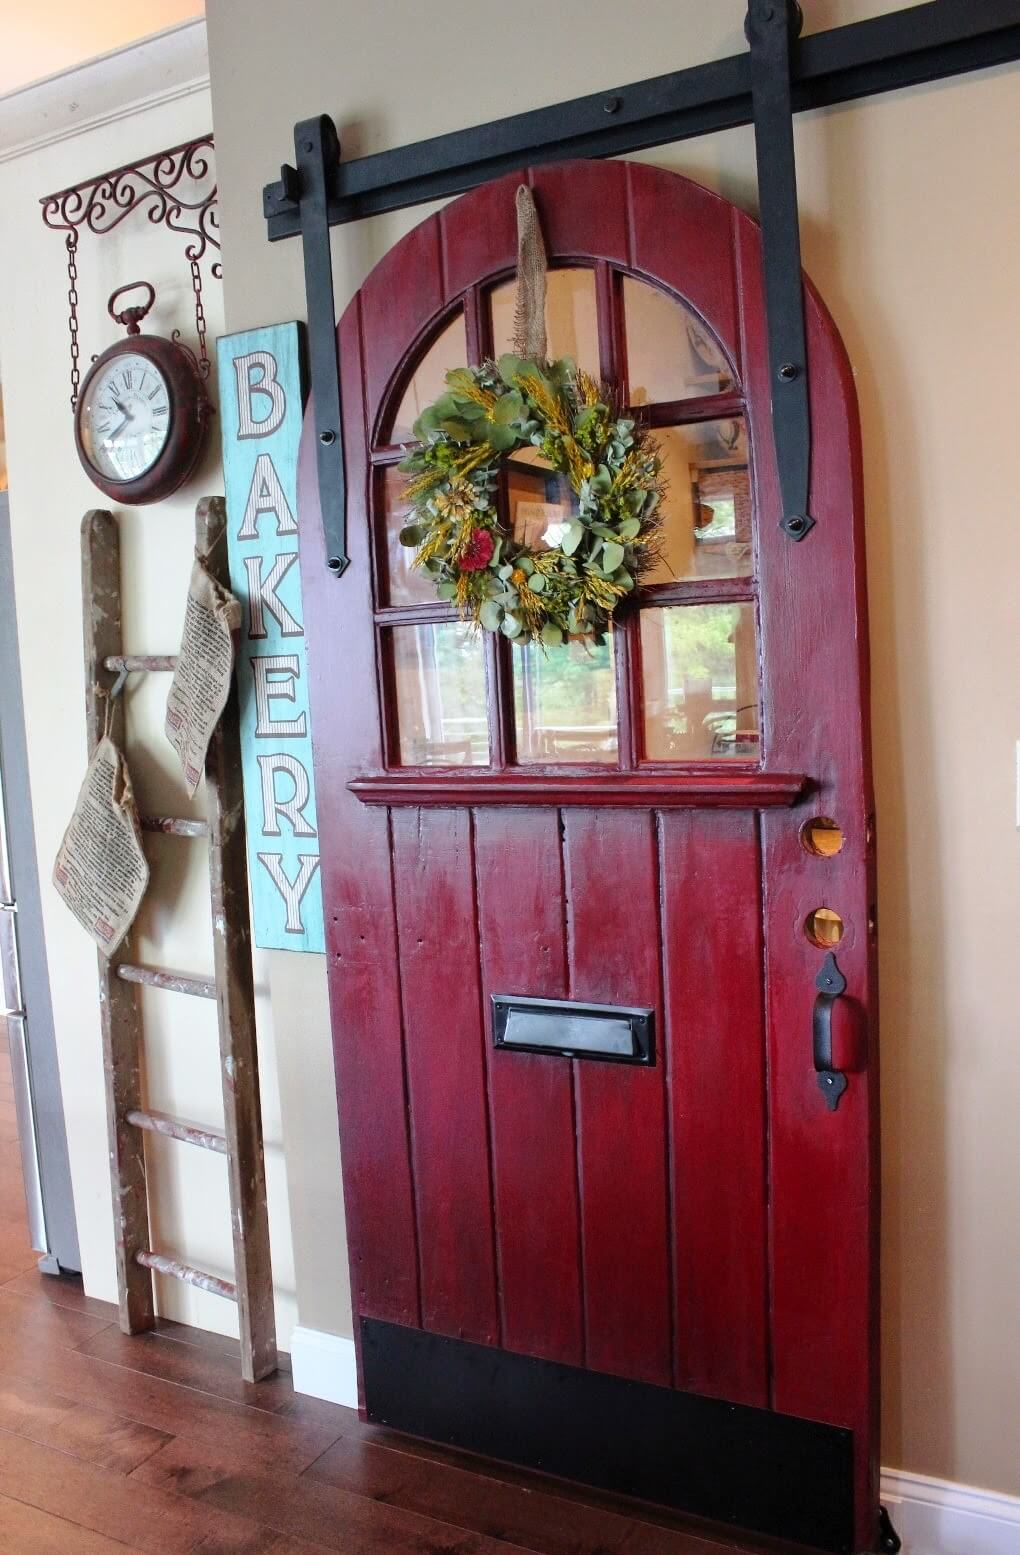 Round Top Door Lends Magic and Mystery